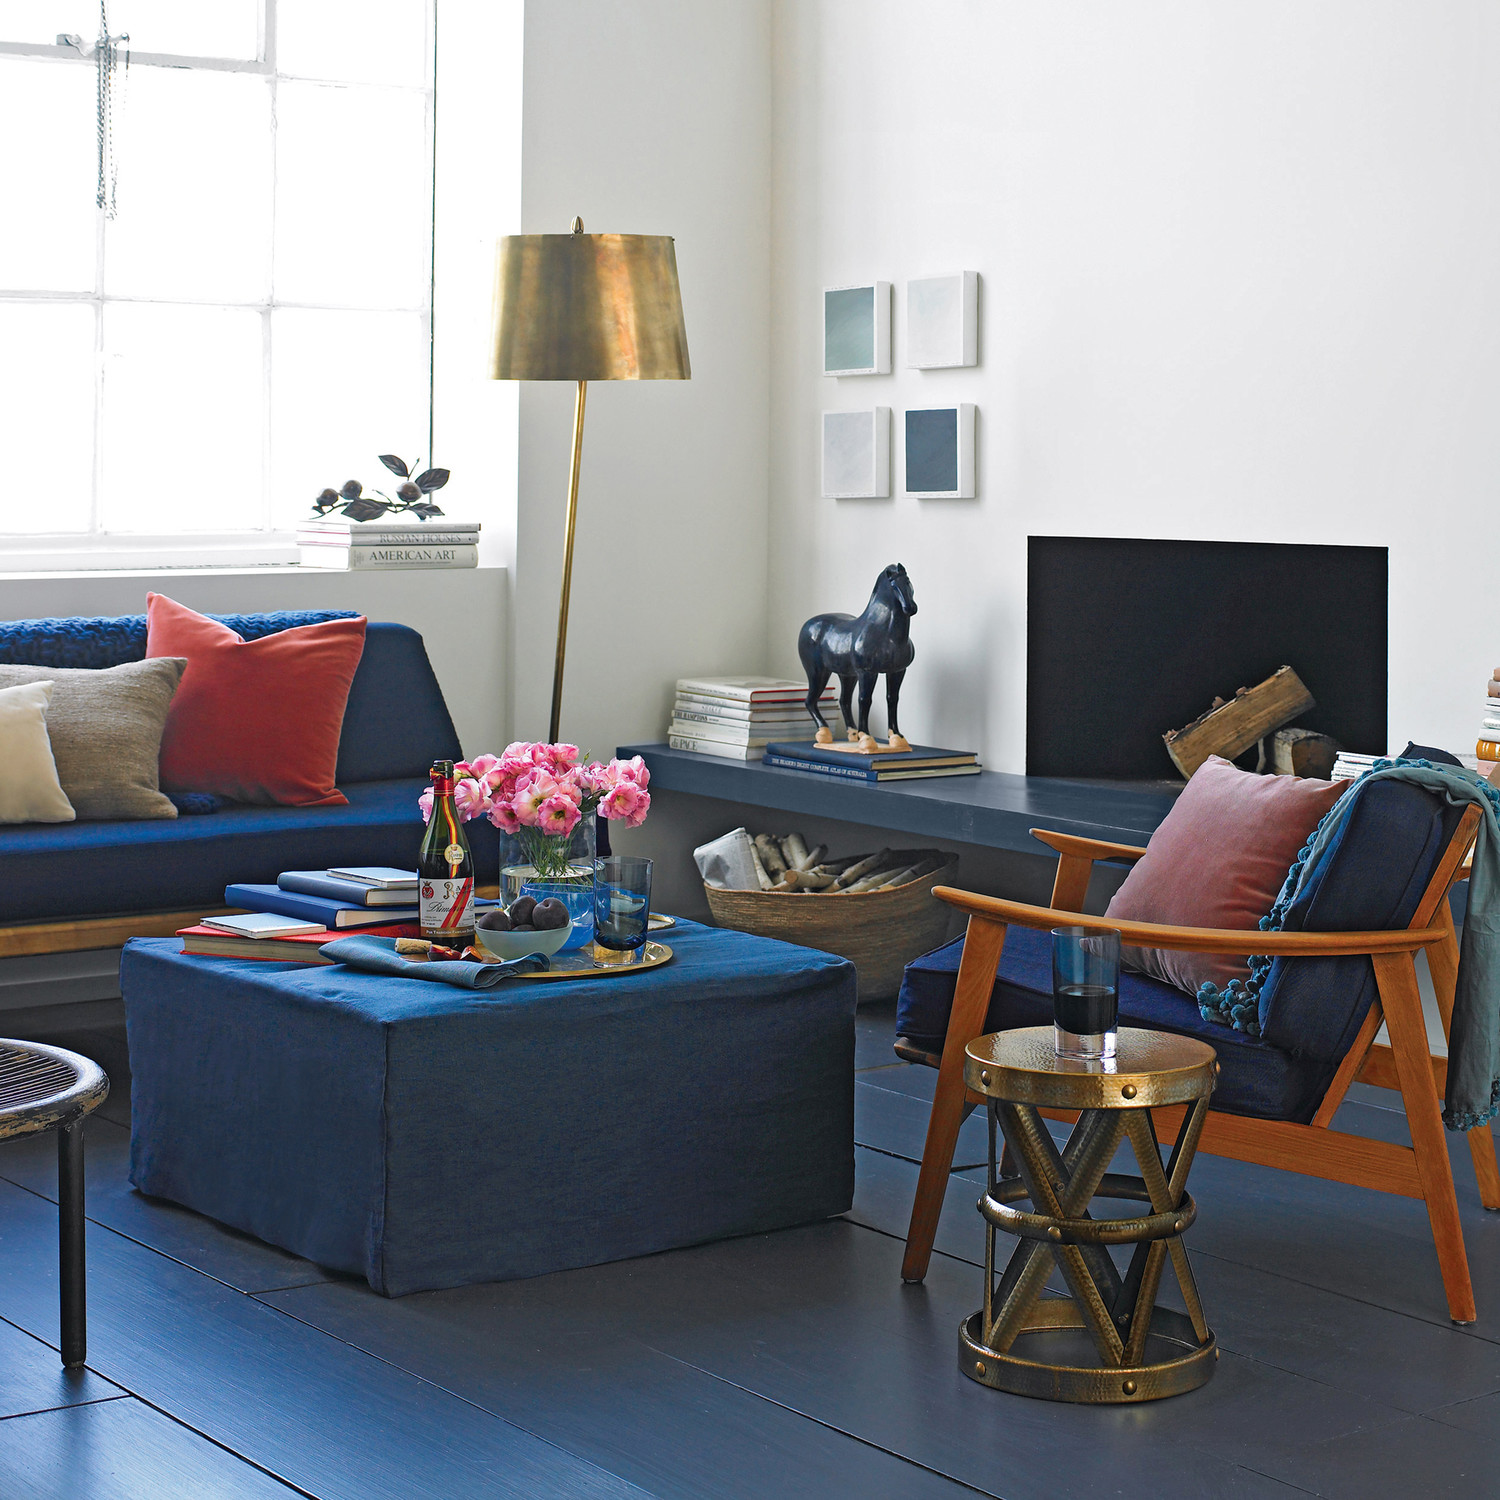 Decorating with Dark Colors